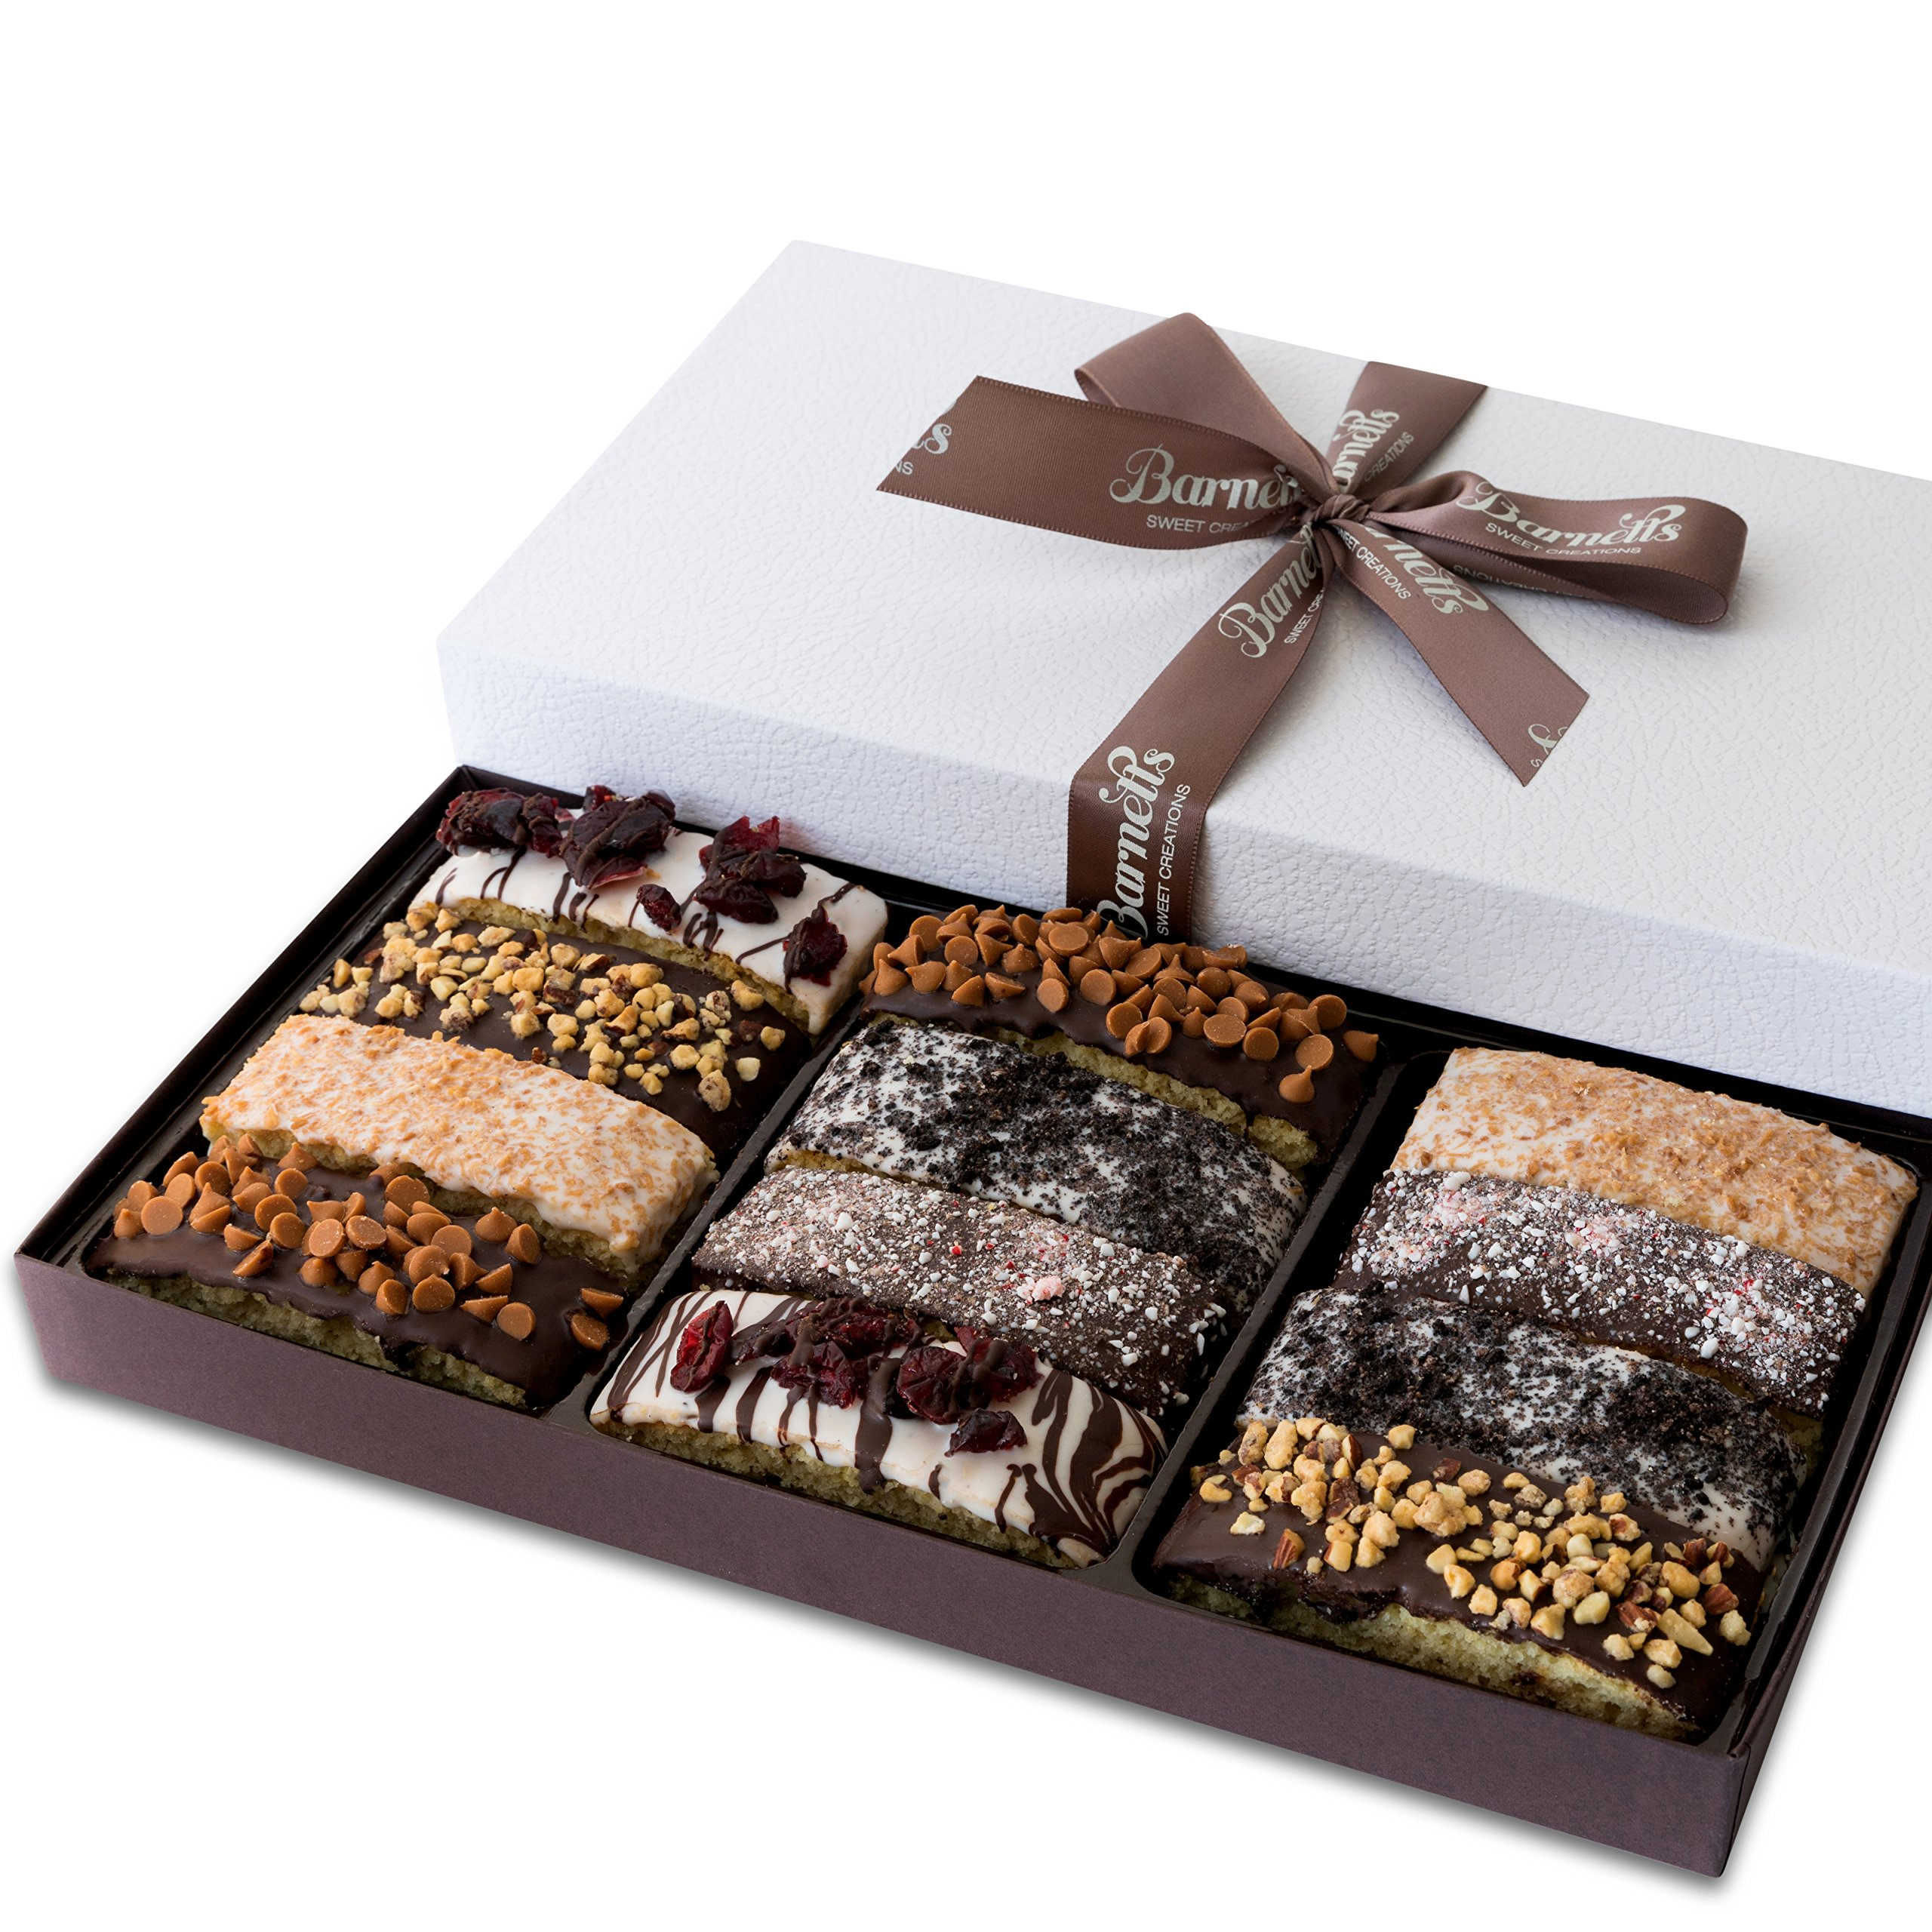 barnetts gourmet chocolate biscotti gift basket christmas holiday him her cookie gifts prime